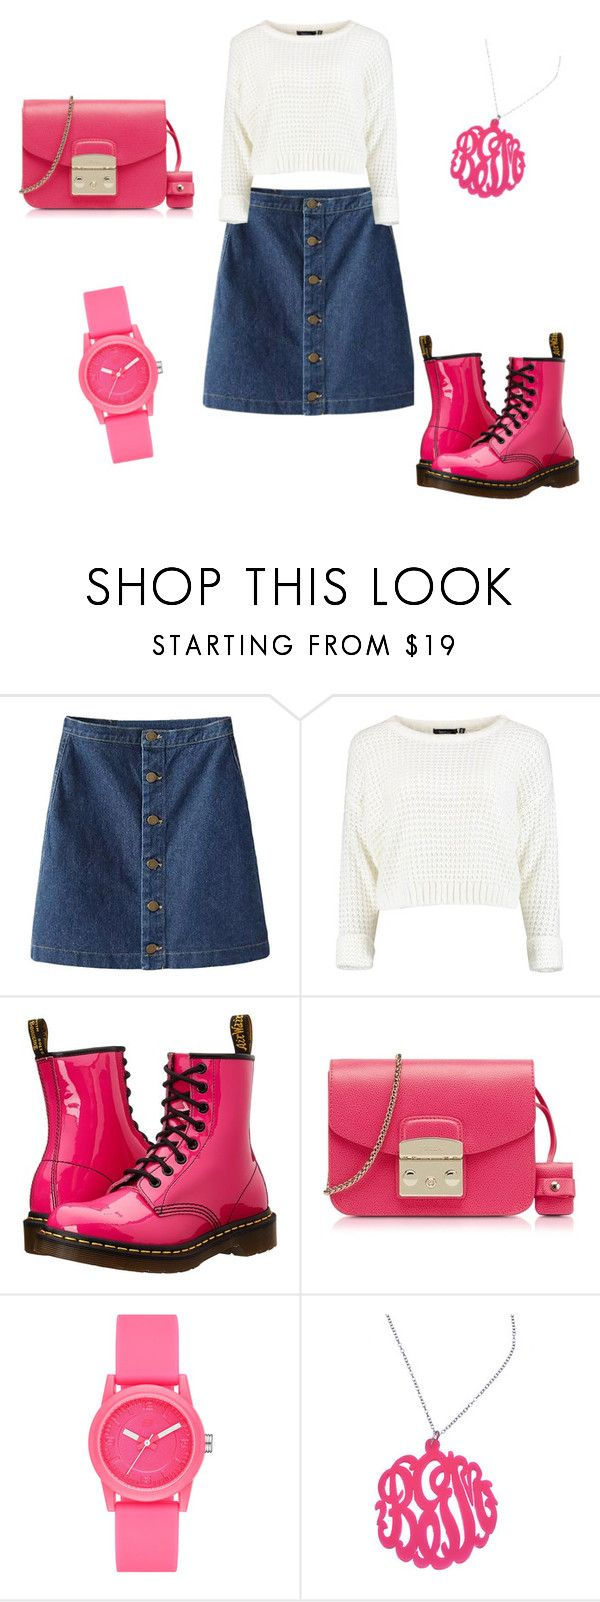 """""""Untitled #43"""" by ellen7ellen ❤ liked on Polyvore featuring Dr. Martens, Furla, Skechers and Initial Reaction"""